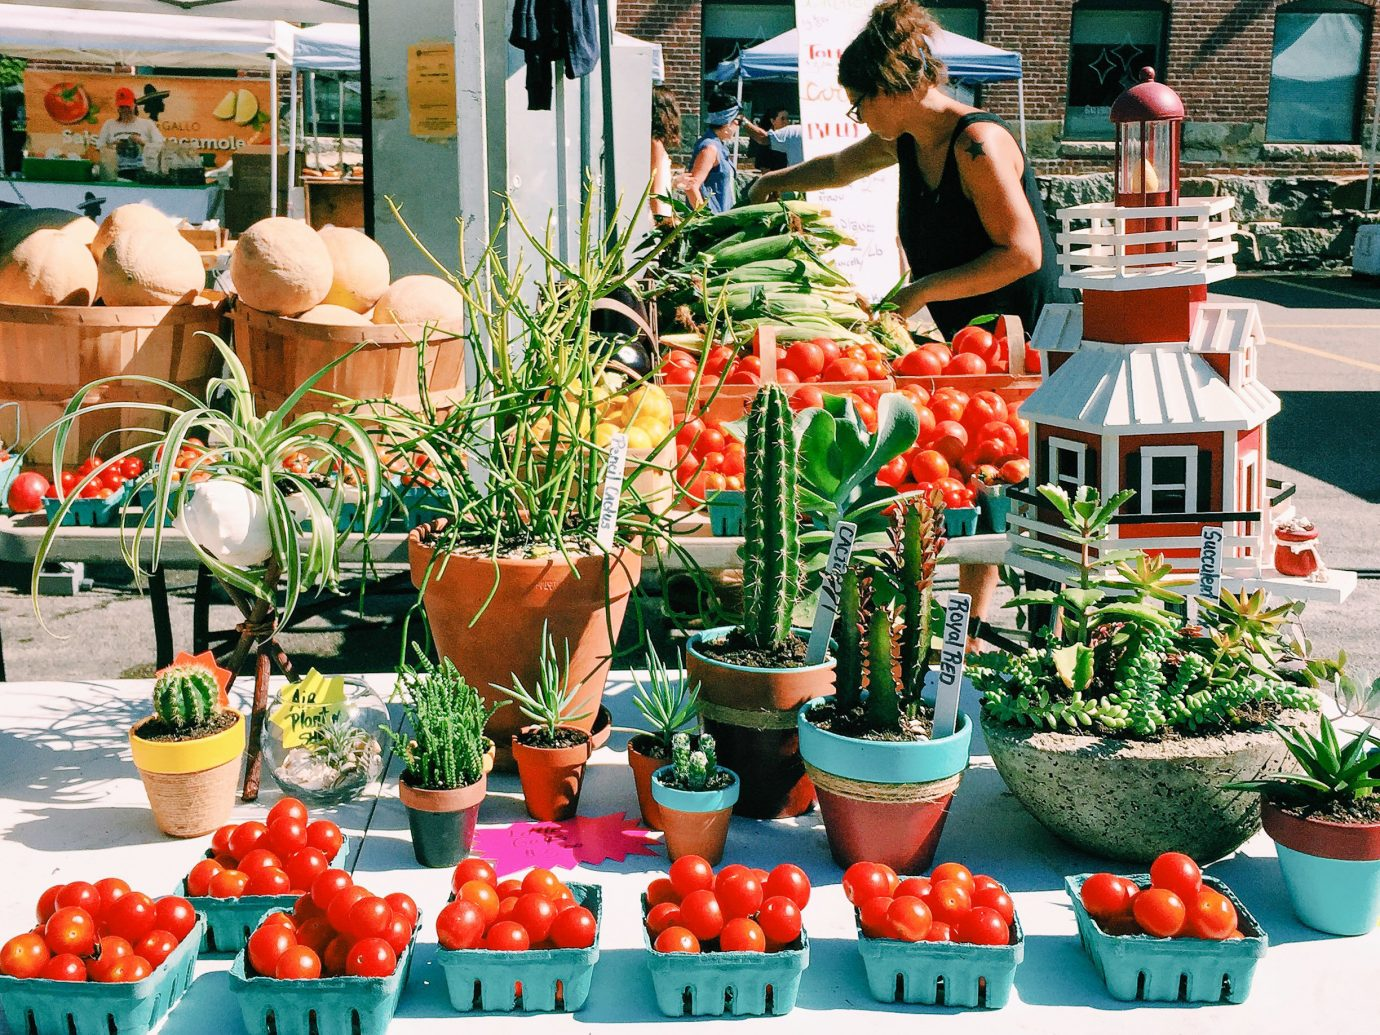 Trip Ideas outdoor local food produce plant marketplace floristry flower market vegetable flowering plant vendor greengrocer food natural foods flowerpot fruit stall whole food floral design fresh